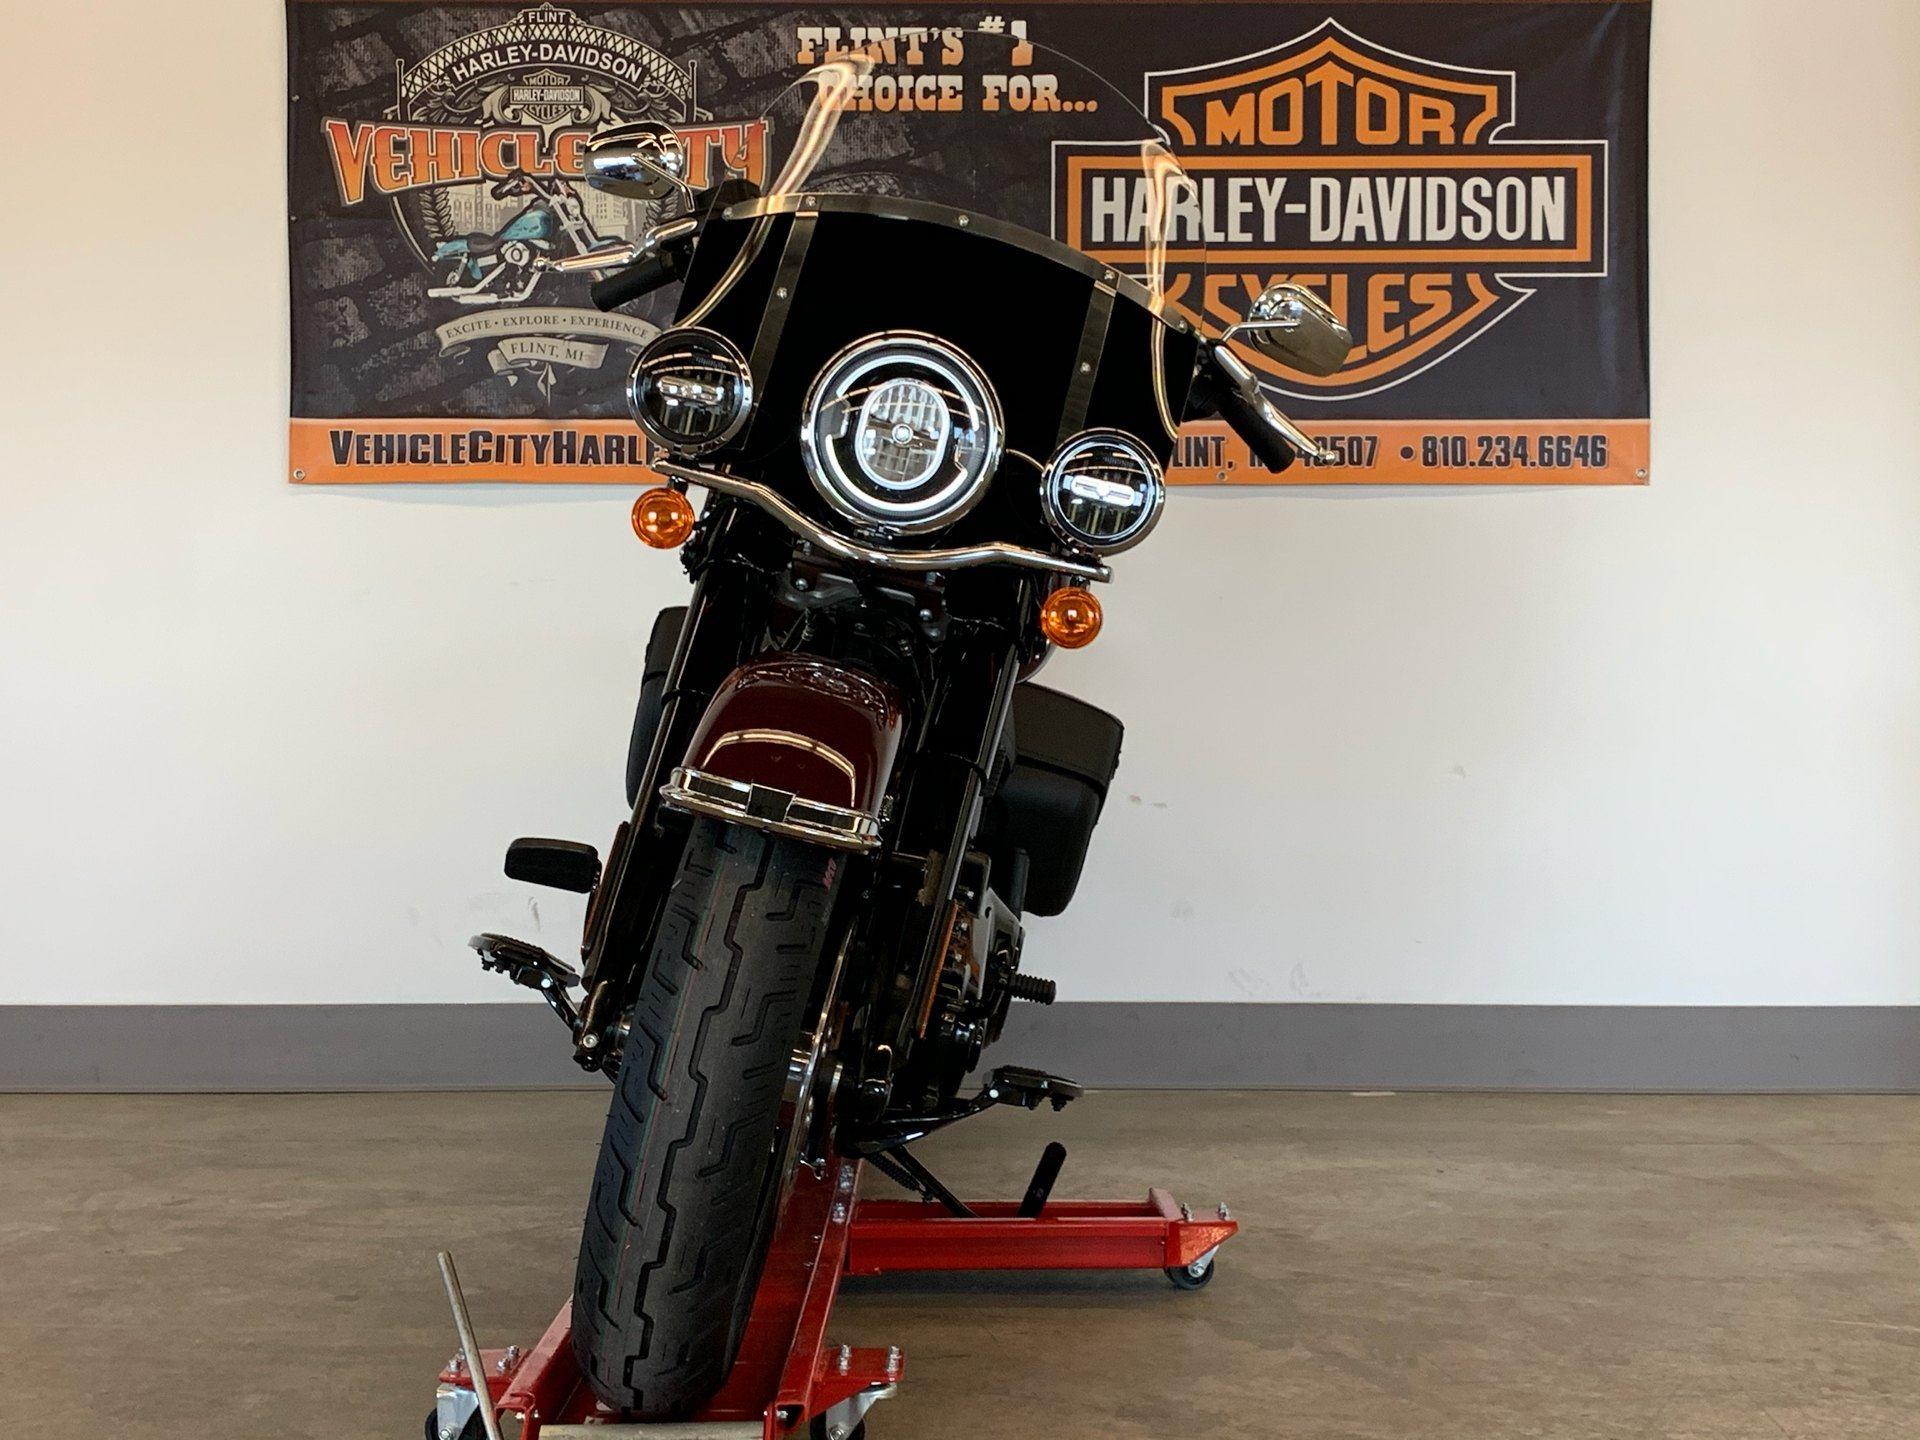 2020 Harley-Davidson Heritage Classic 114 in Flint, Michigan - Photo 3